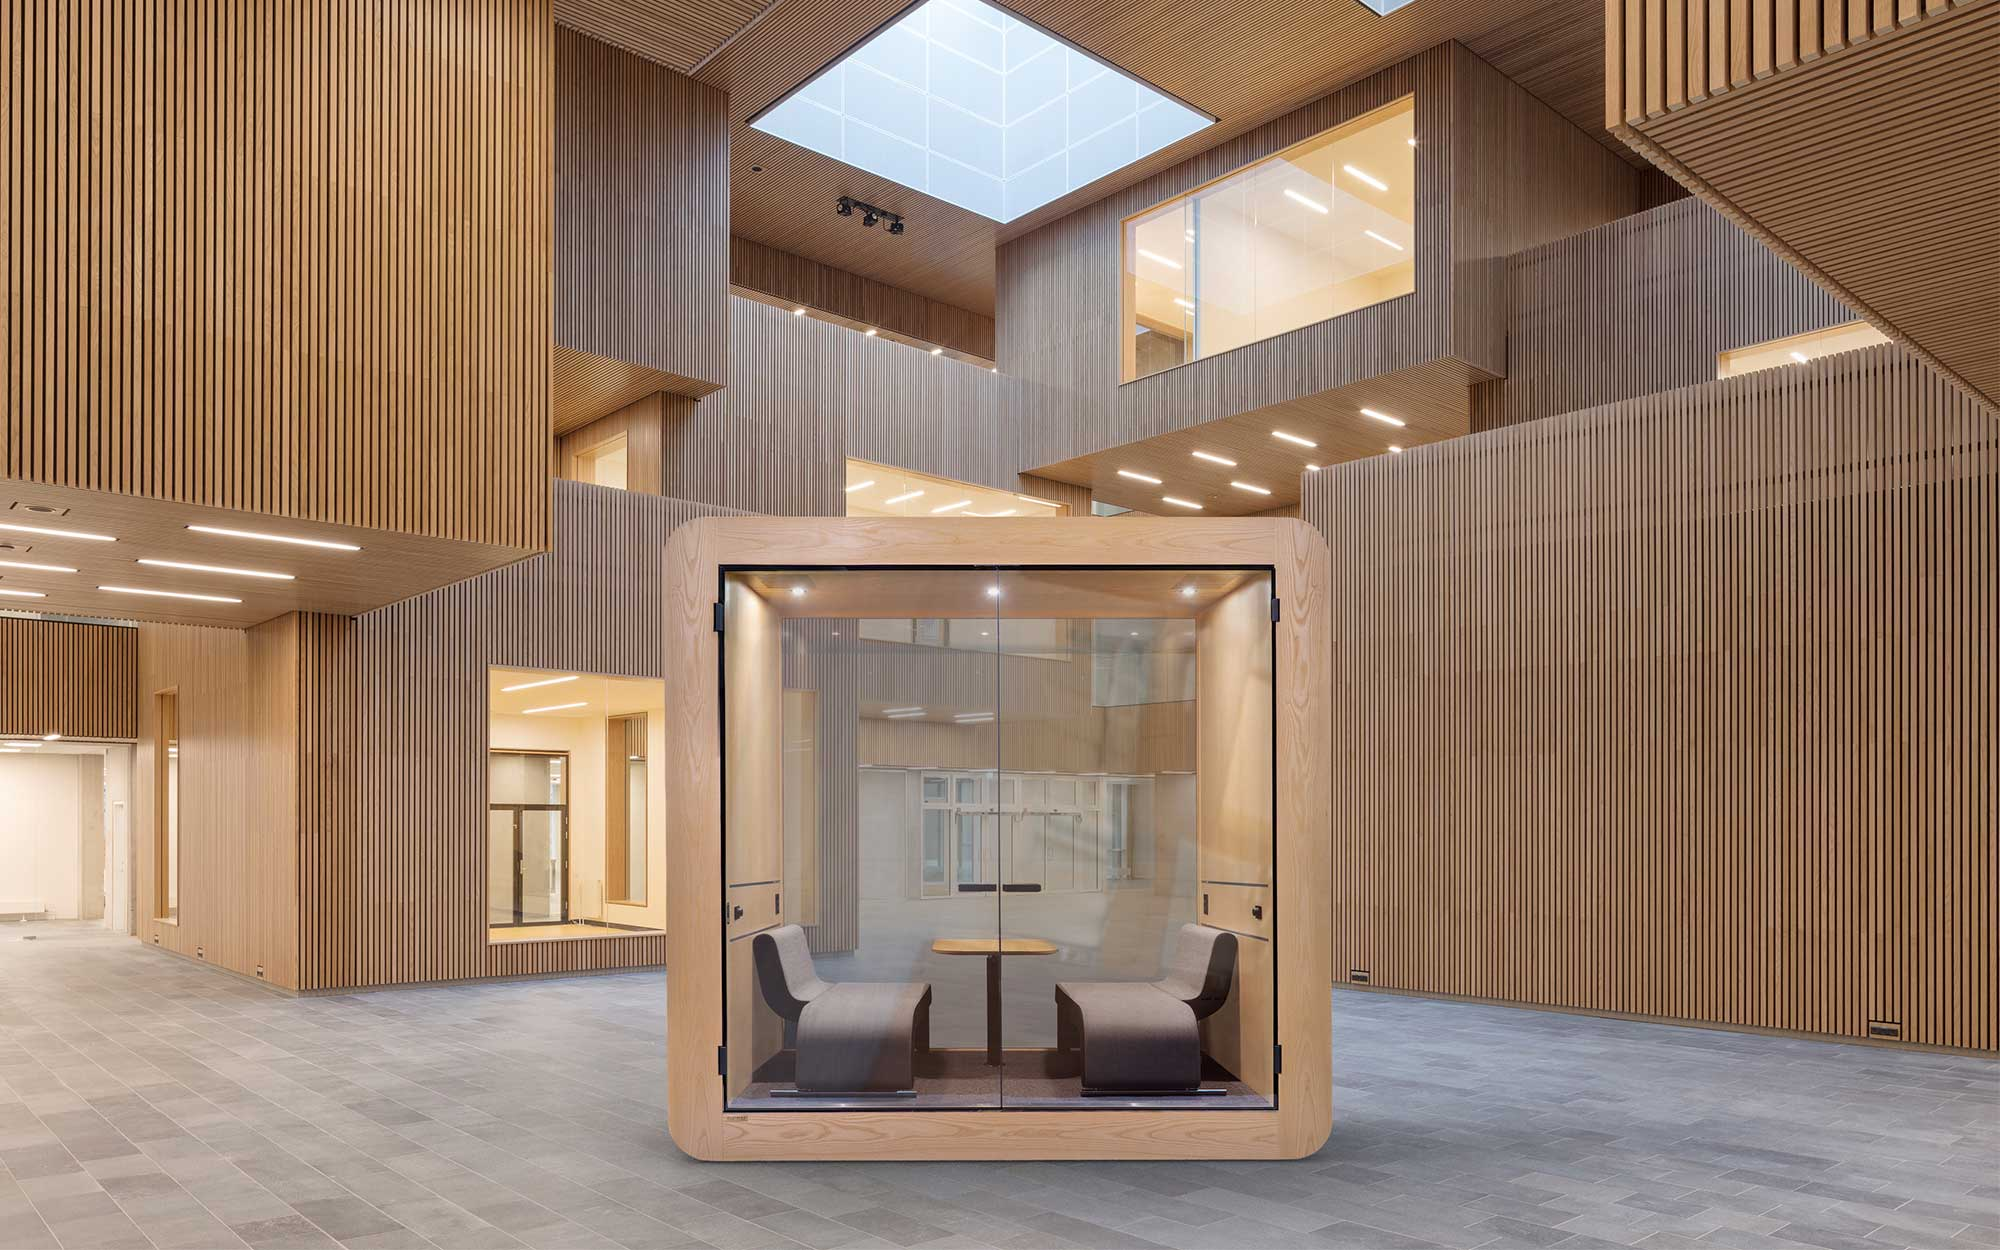 Gustafs Acoustic Meeting Pod for offices and public spaces